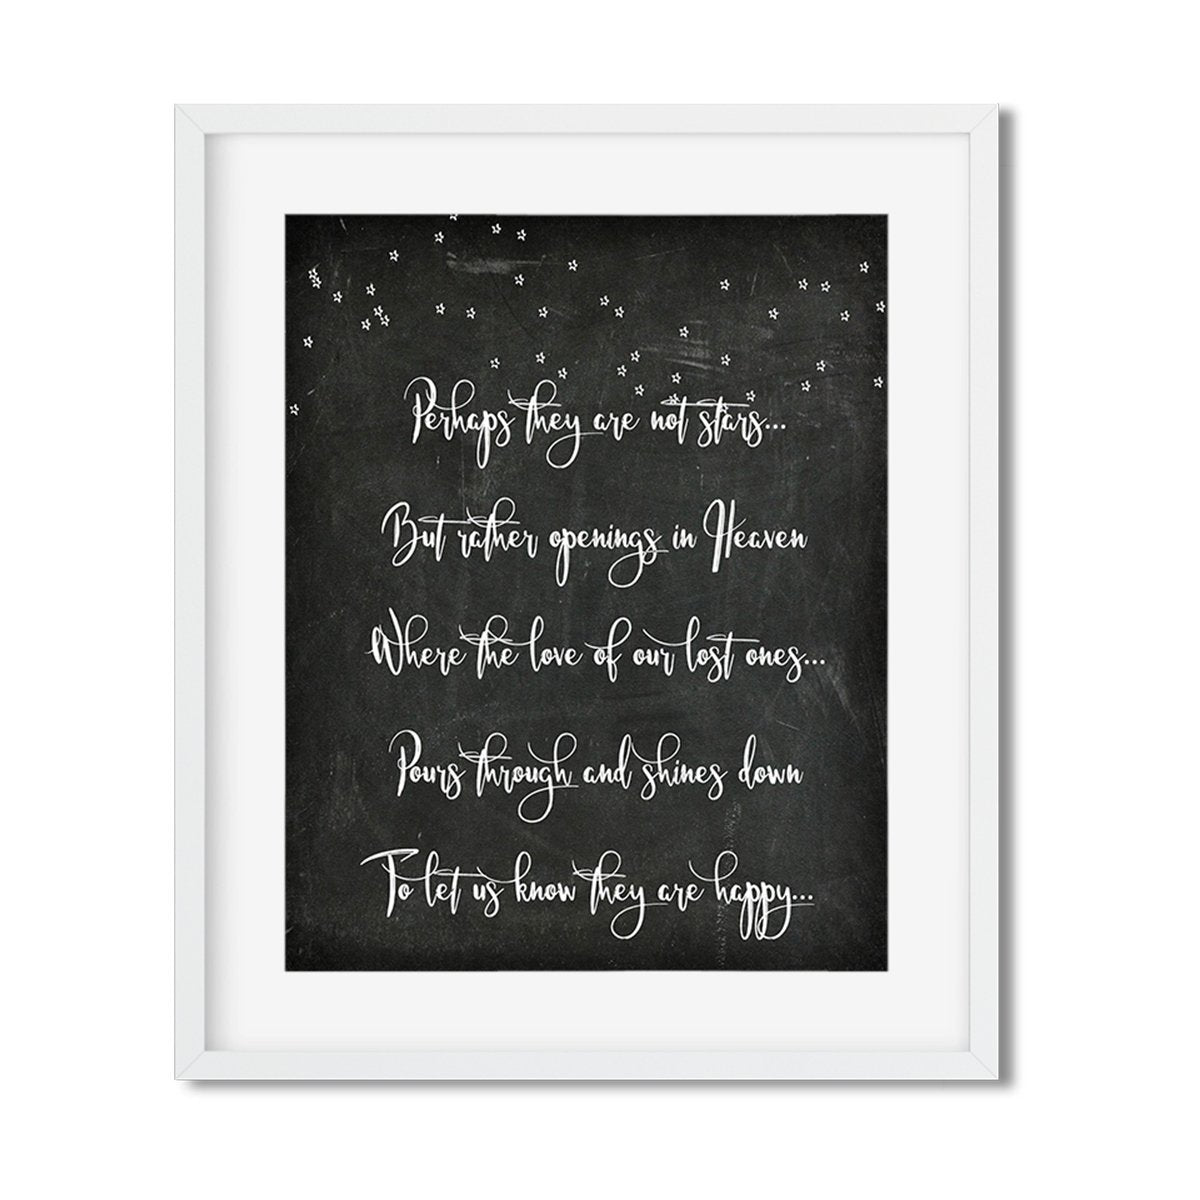 Perhaps they are not stars - Art Print - Netties Expressions